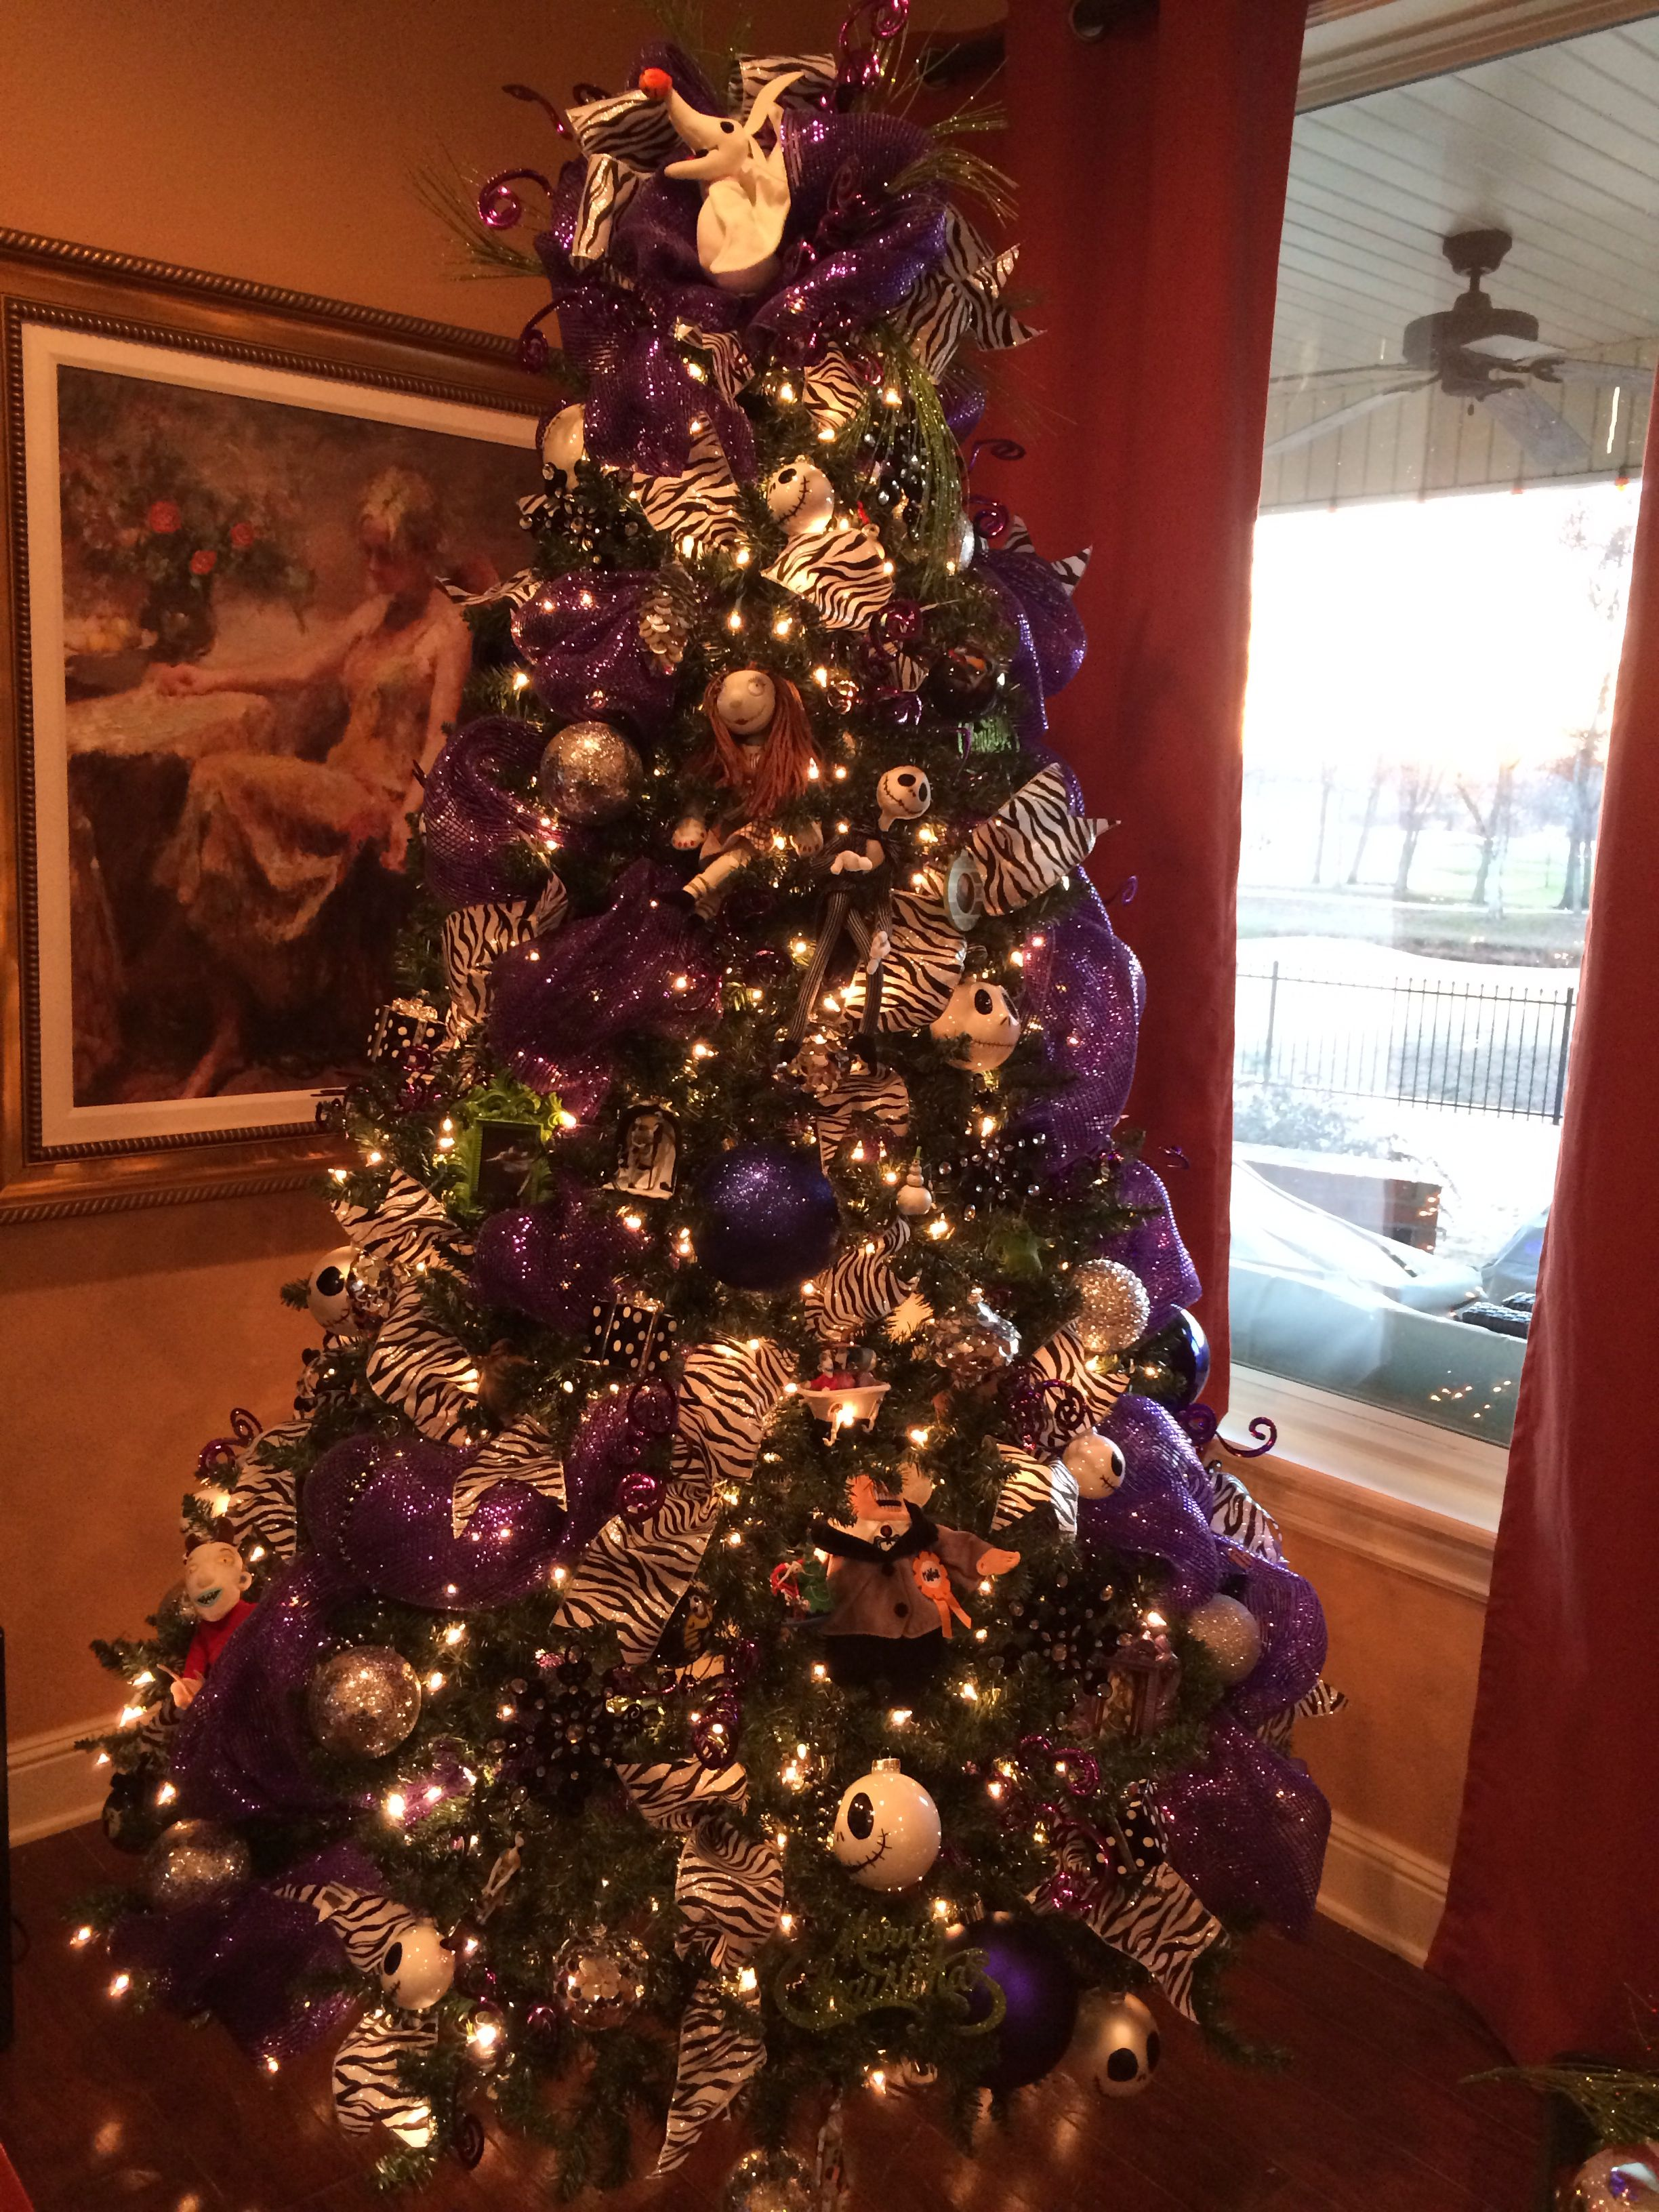 Our nightmare before Christmas tree! | Christmas | Pinterest ...